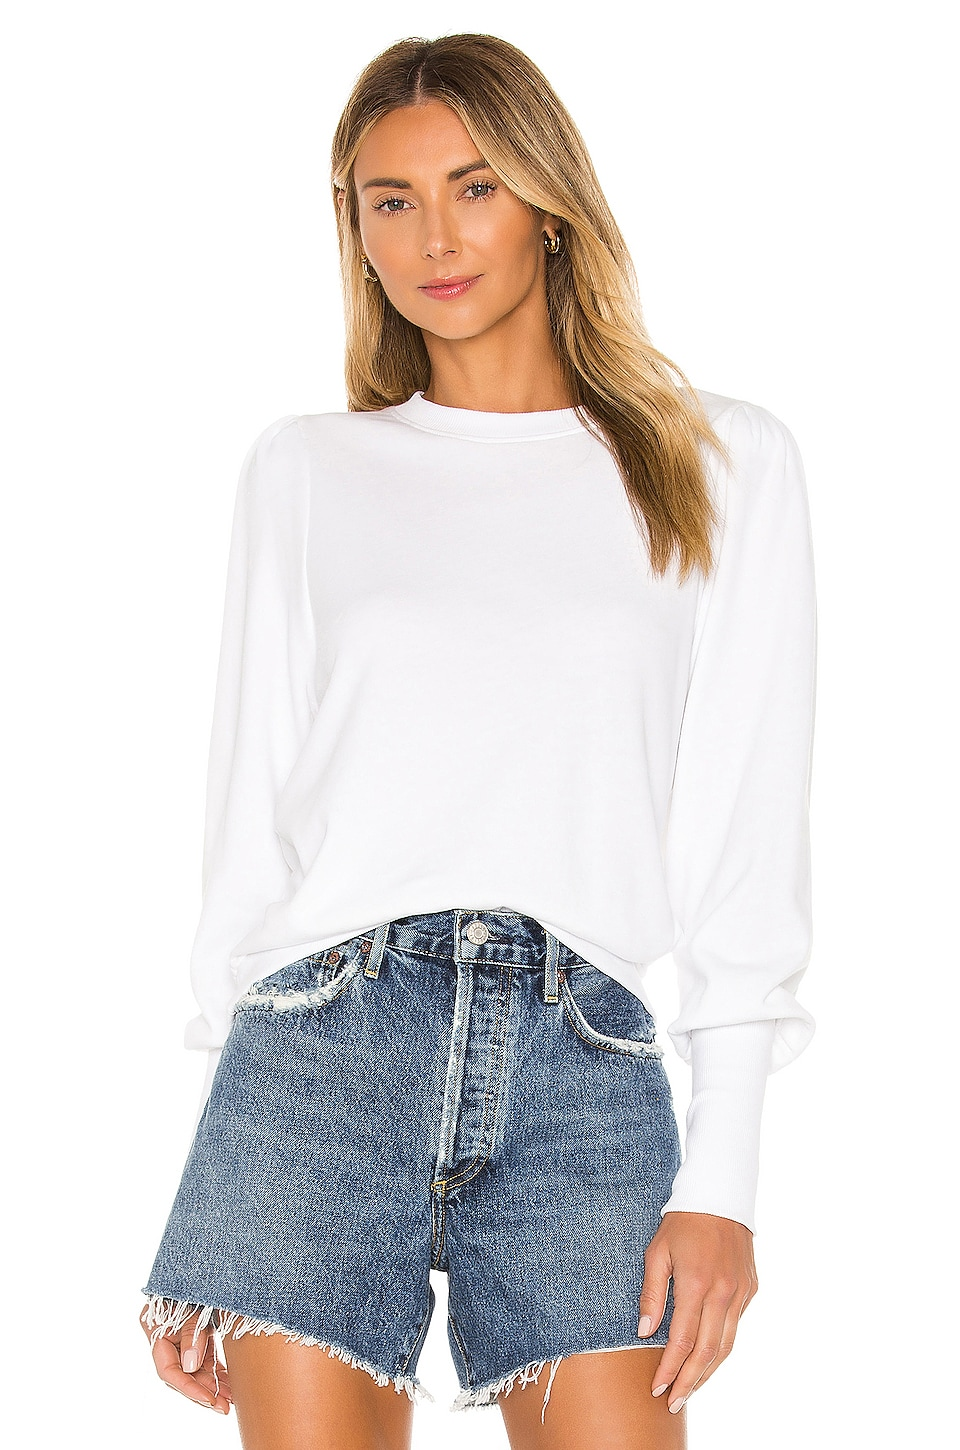 Nation LTD Bethany Puff Sleeve Sweatshirt in White